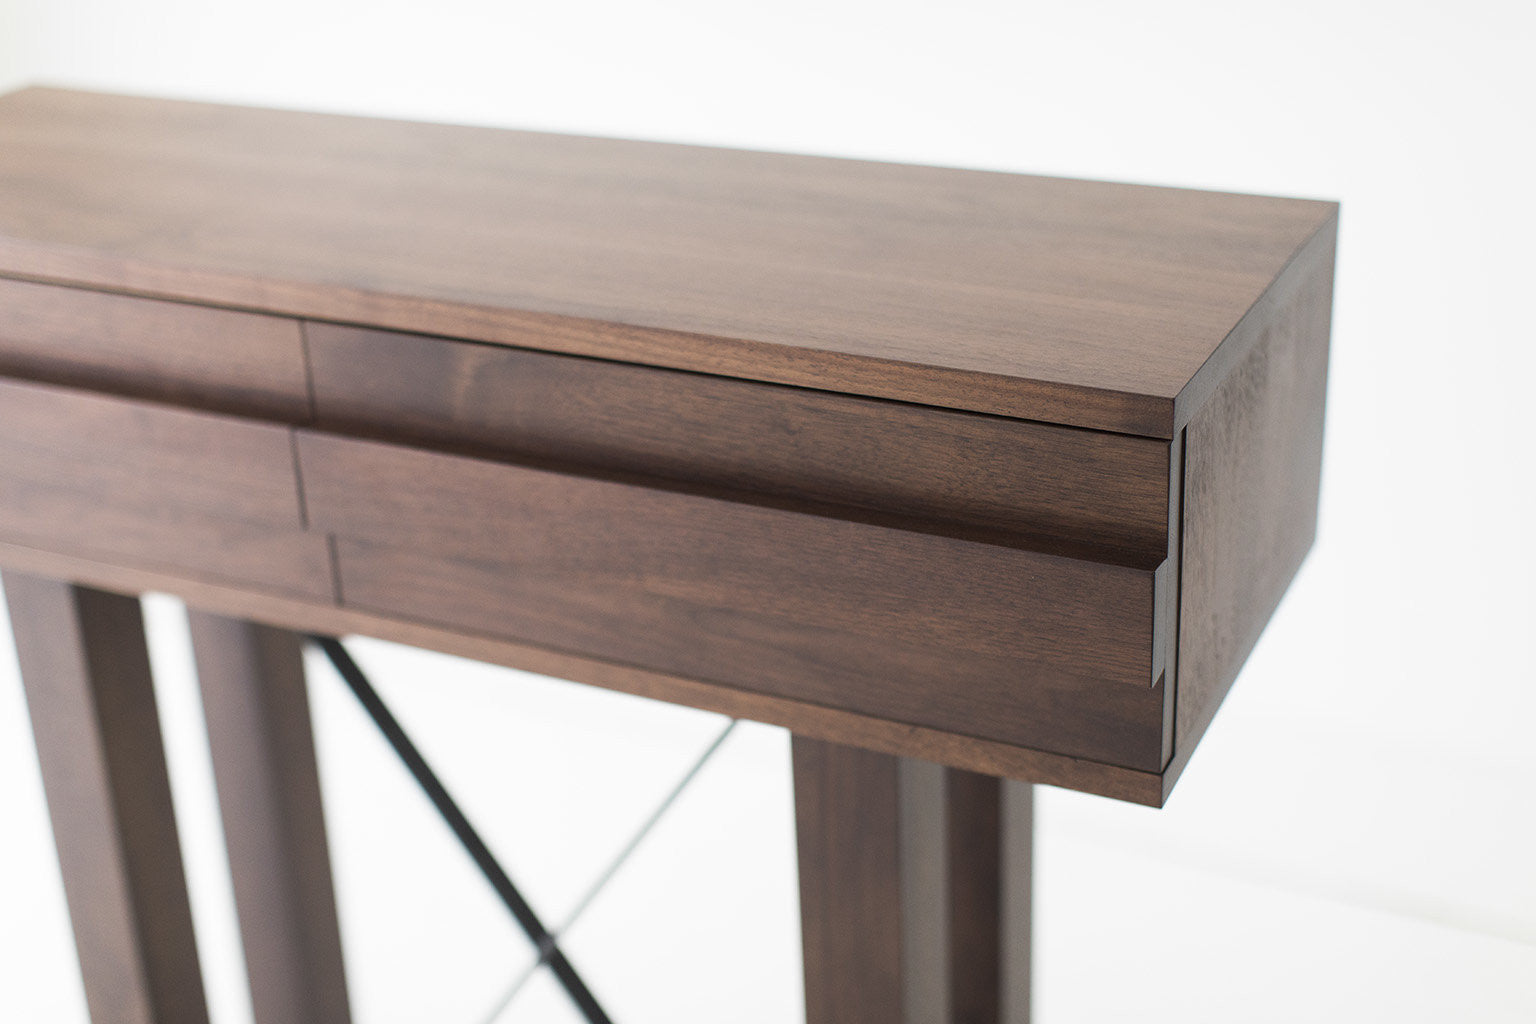 Modern-Console-Shorty-0417-04